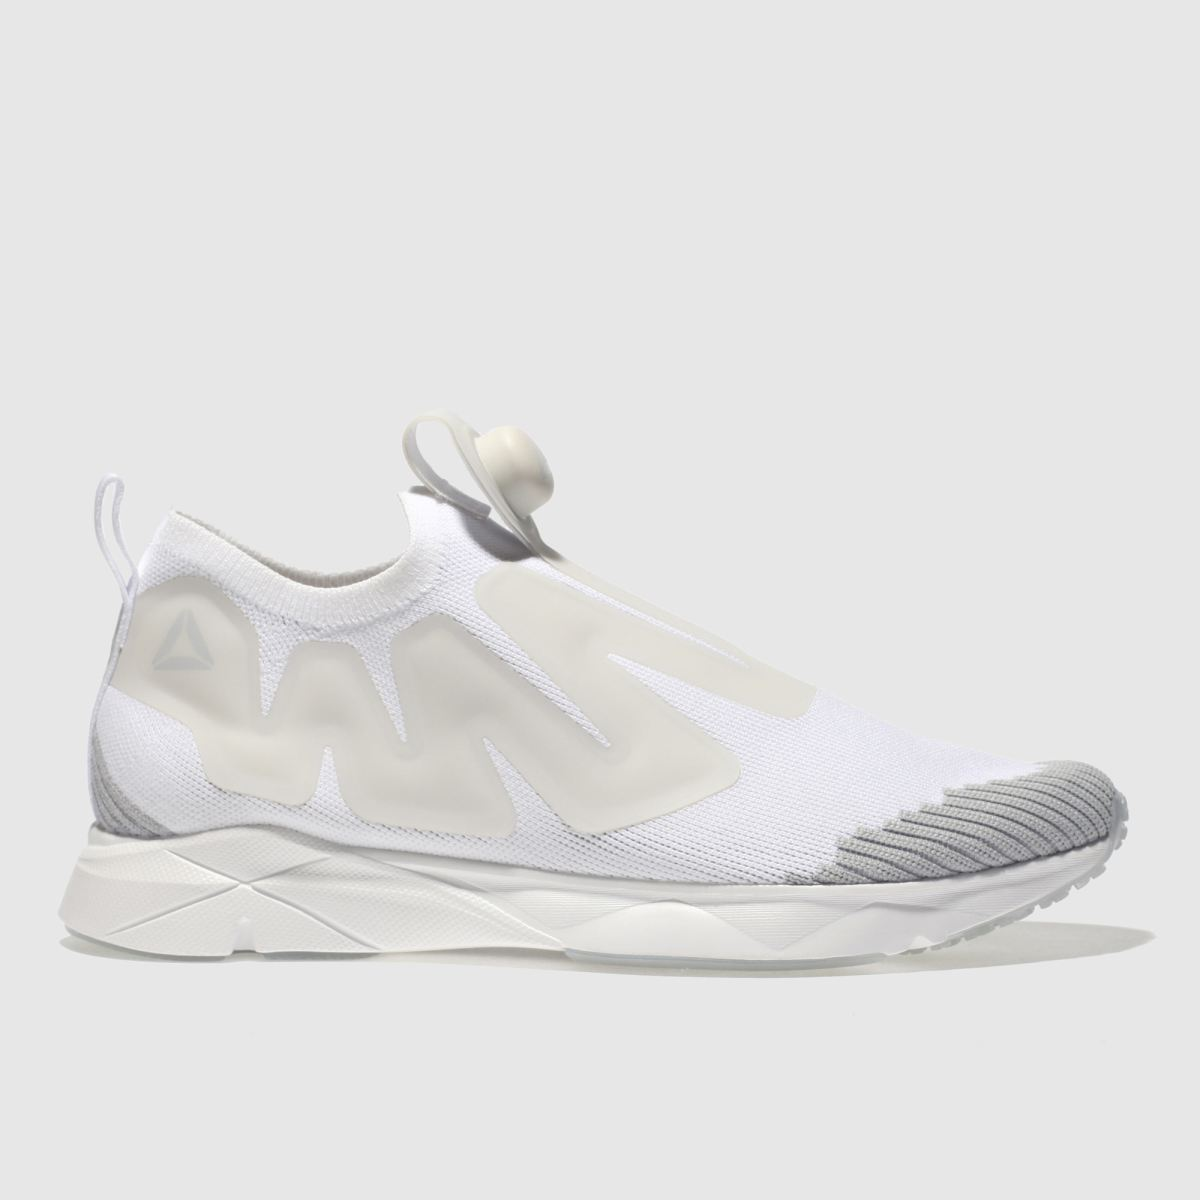 Reebok White & Grey Pump Supreme Trainers